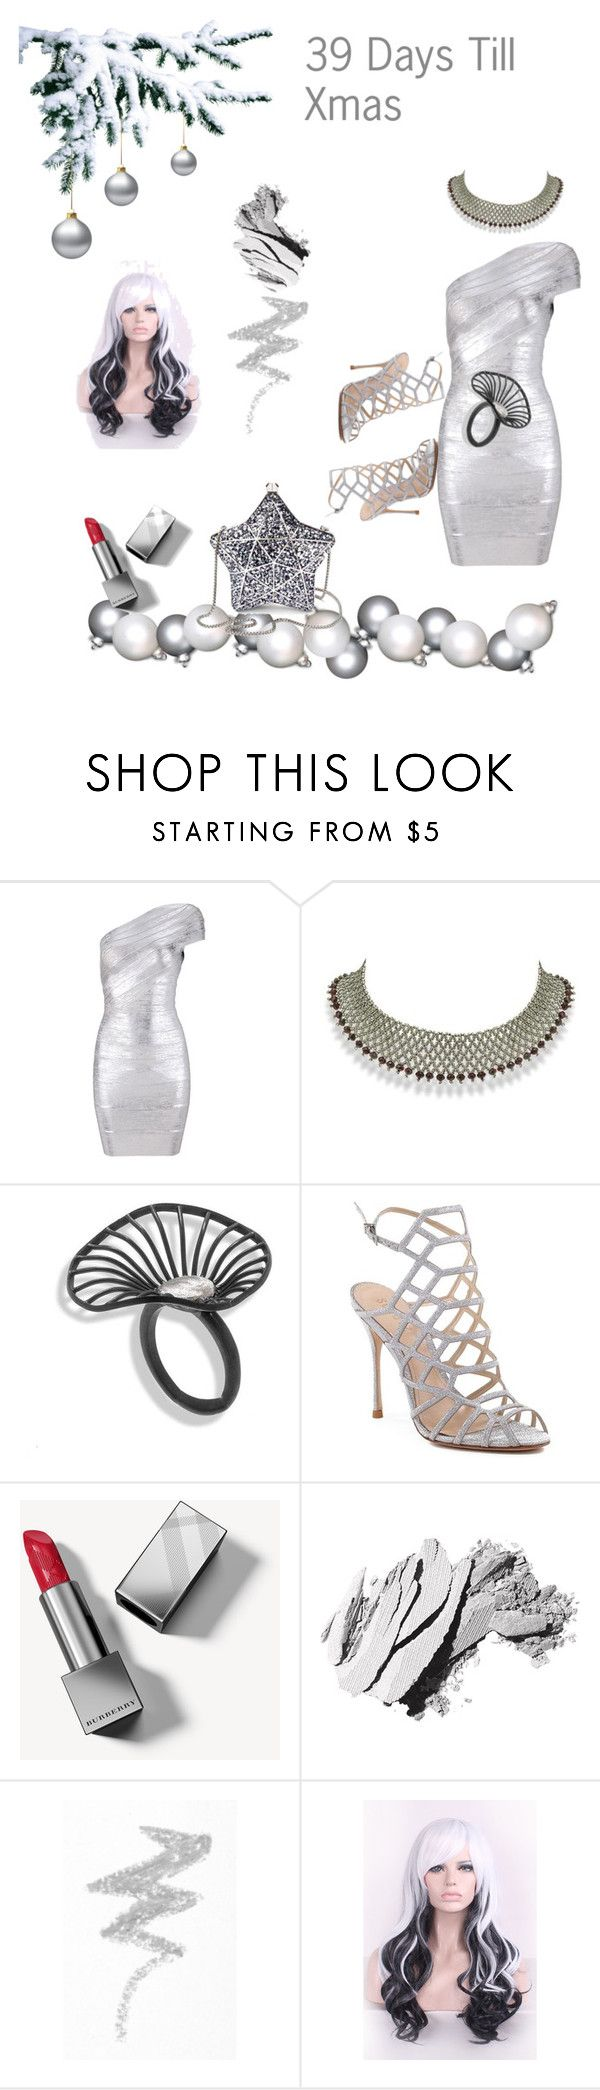 """""""39 days till xmas"""" by tonhr on Polyvore featuring Schutz, Burberry, Bobbi Brown Cosmetics and NYX"""